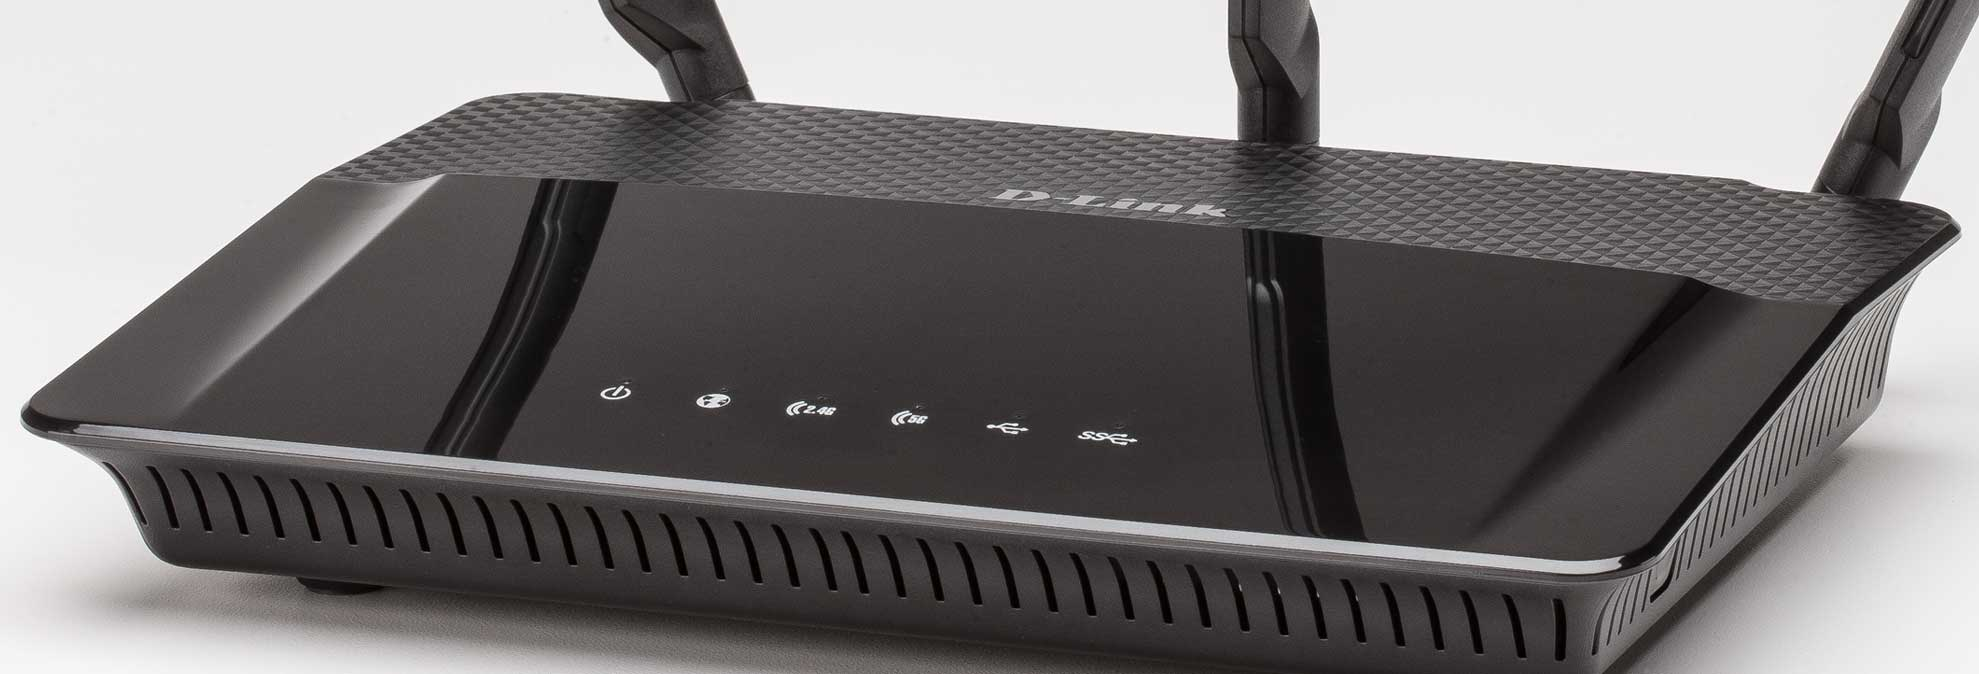 What Consumers Need to Know About D-Link Routers - Consumer Reports